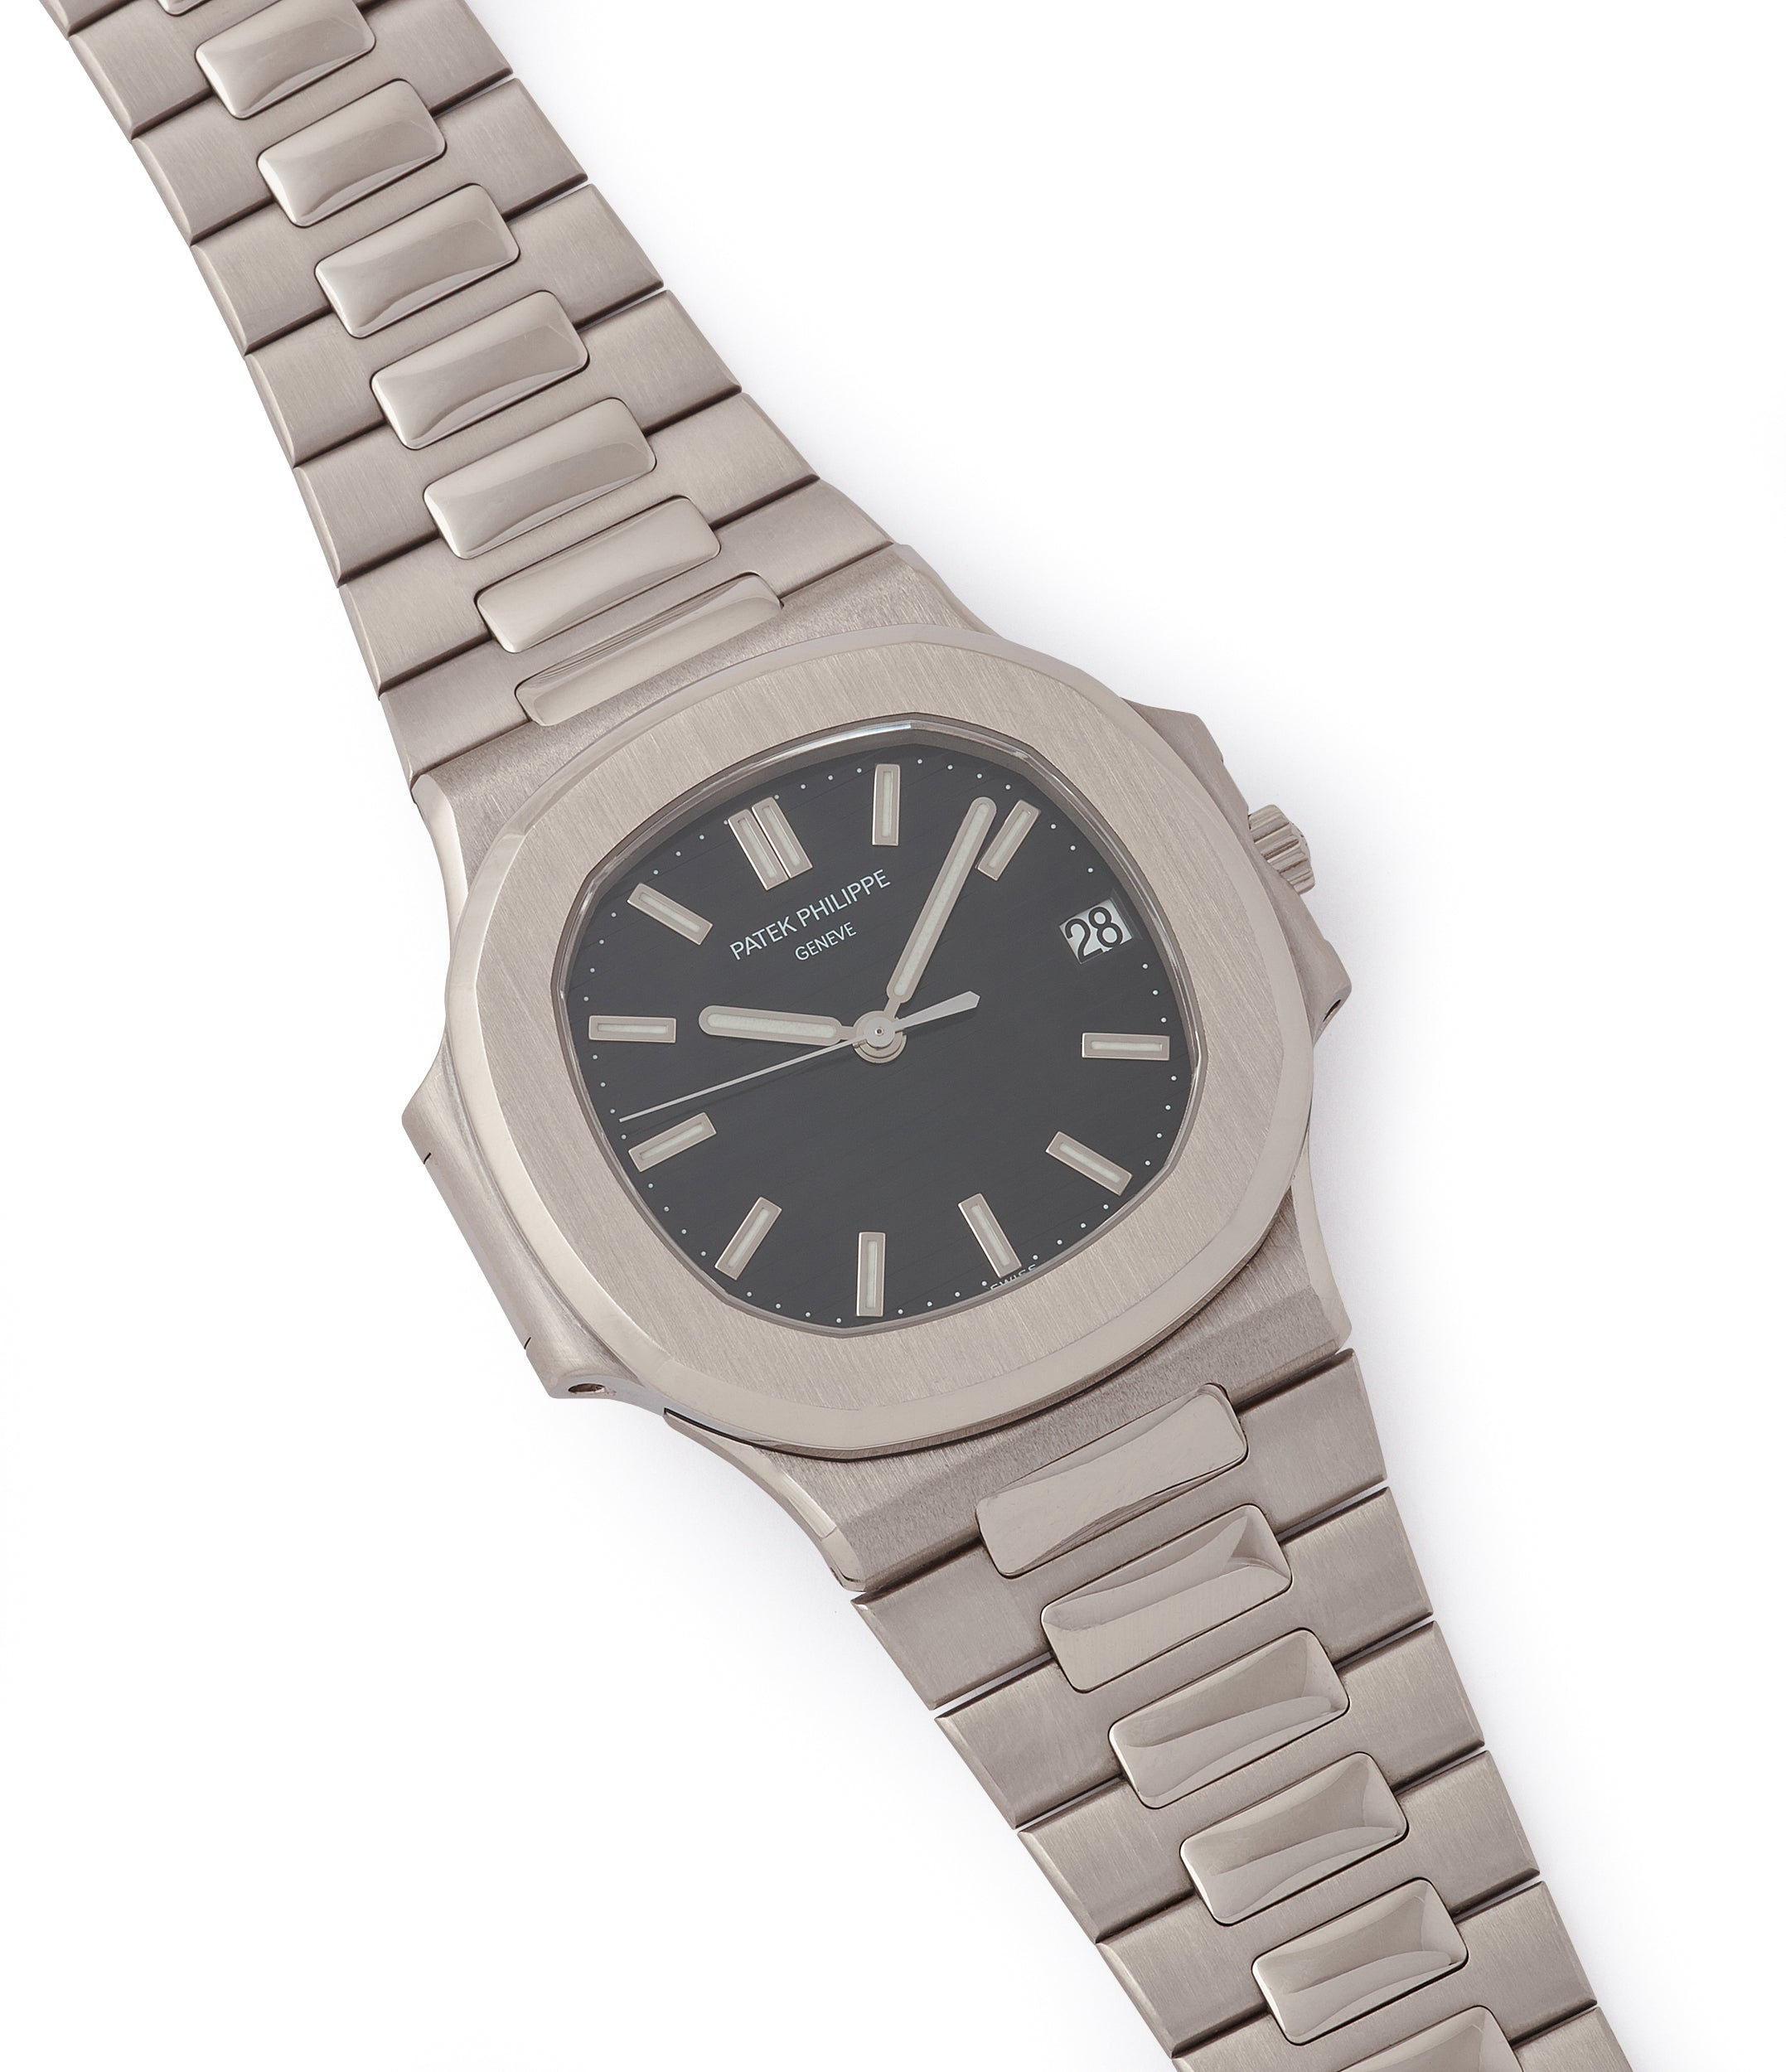 selling Patek Philippe Nautilus 3711/1G-001 white gold pre-owned watch for sale online at A Collected Man London UK specialist of rare watches